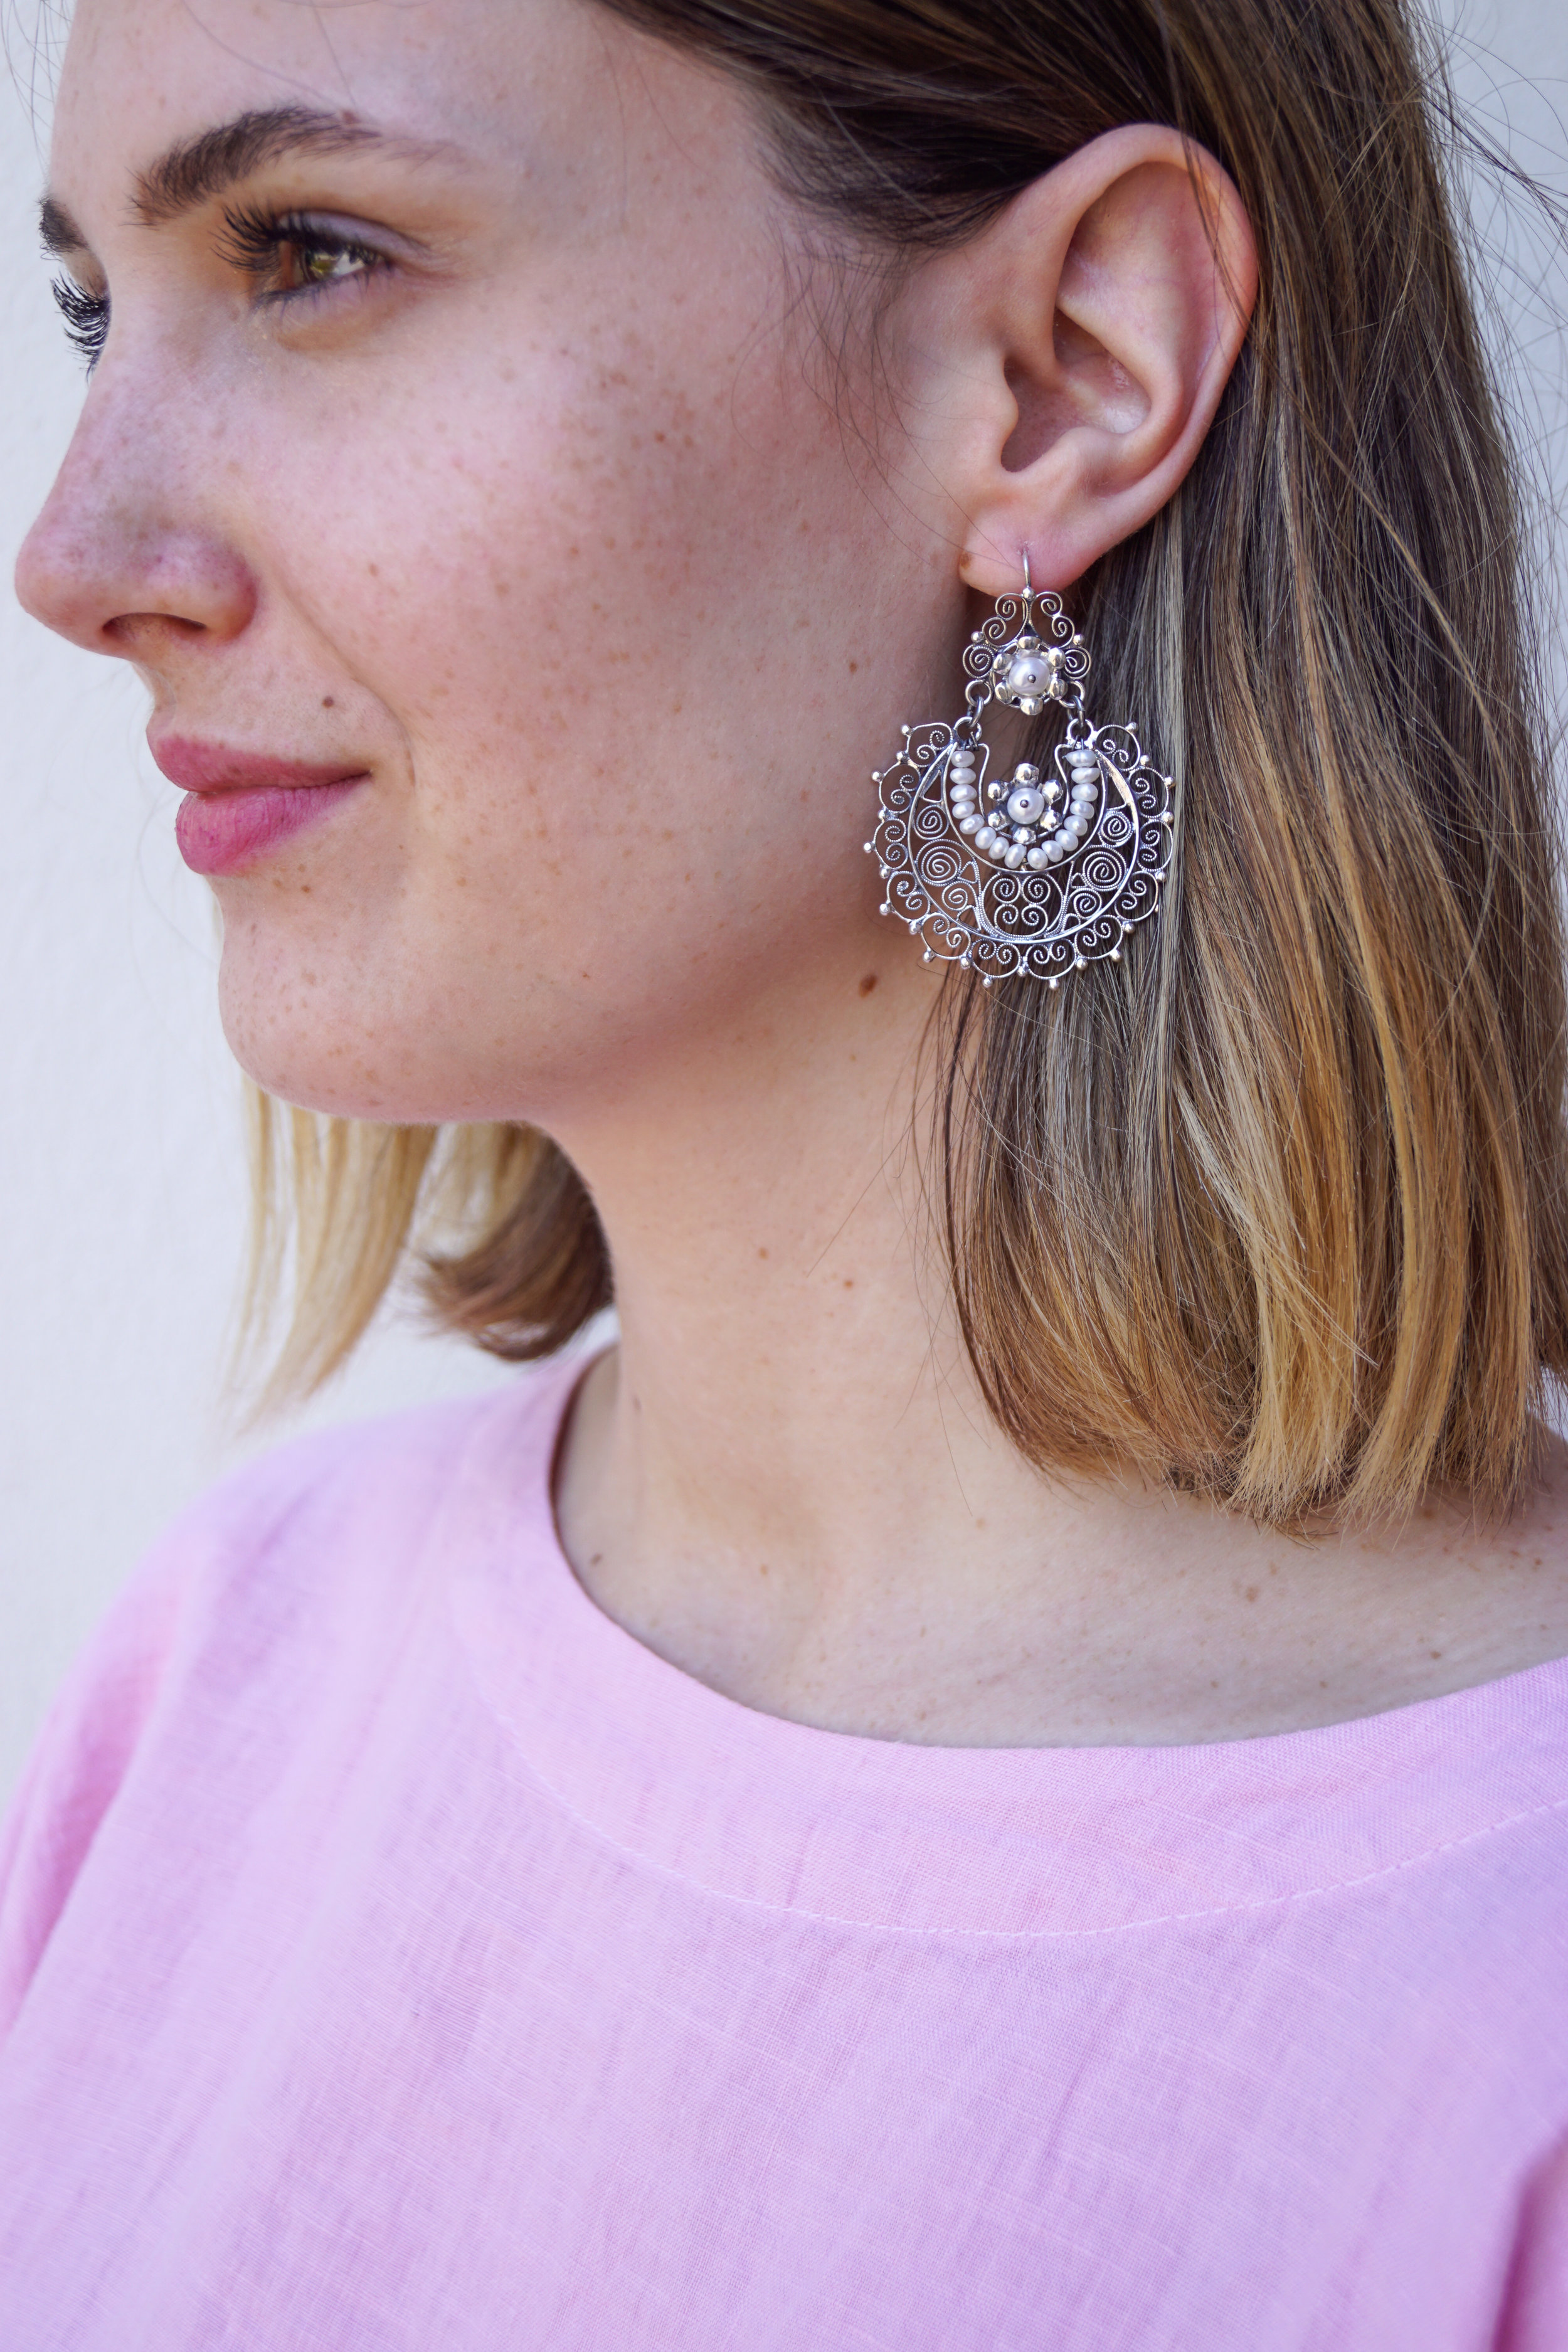 Earrings from Mexico